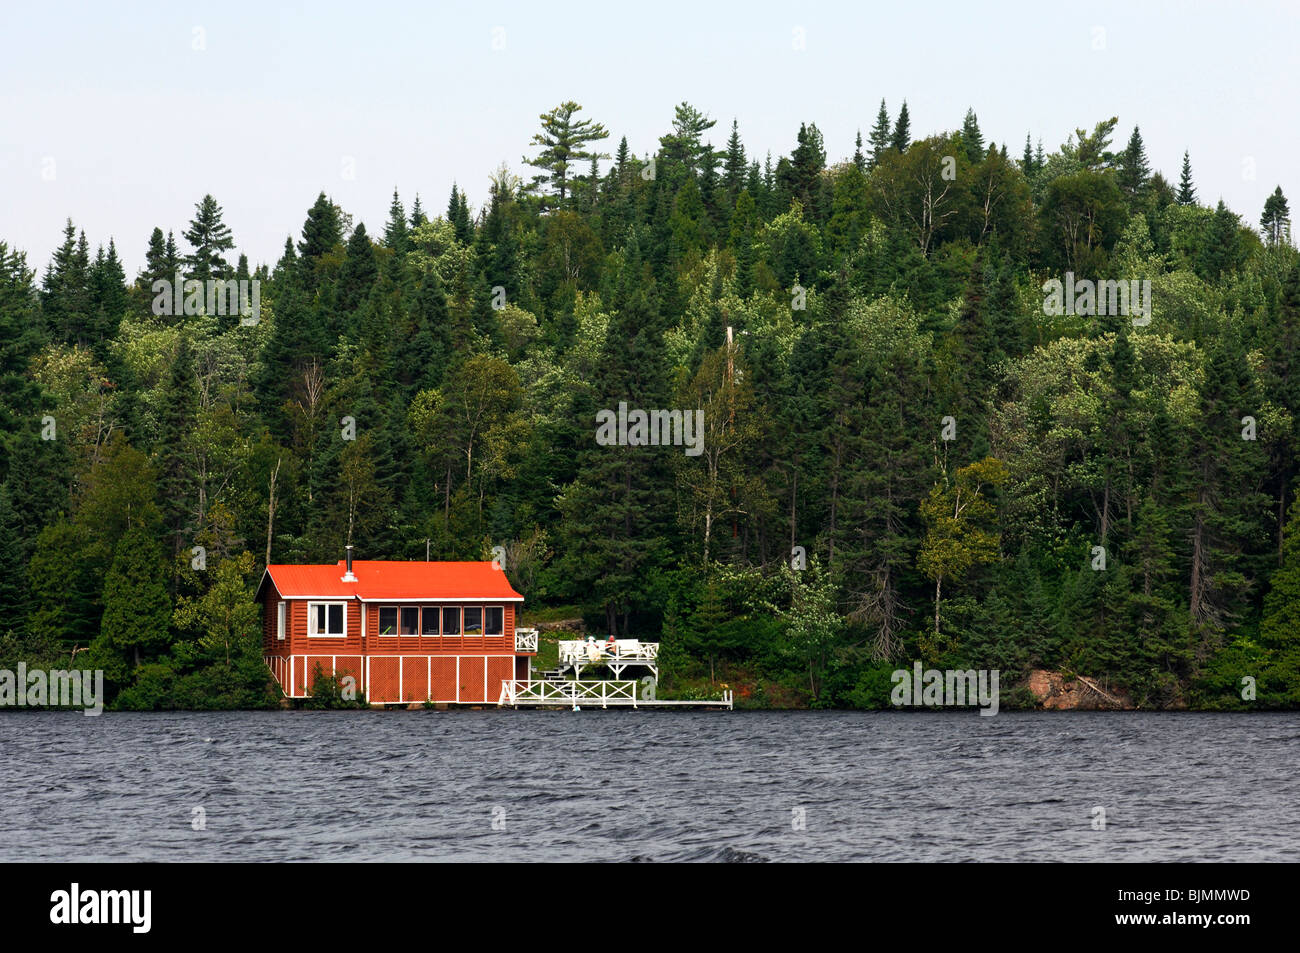 Lonely house with red roof standing at a forest lake in front of a wooded hill, Quebec, Canada - Stock Image